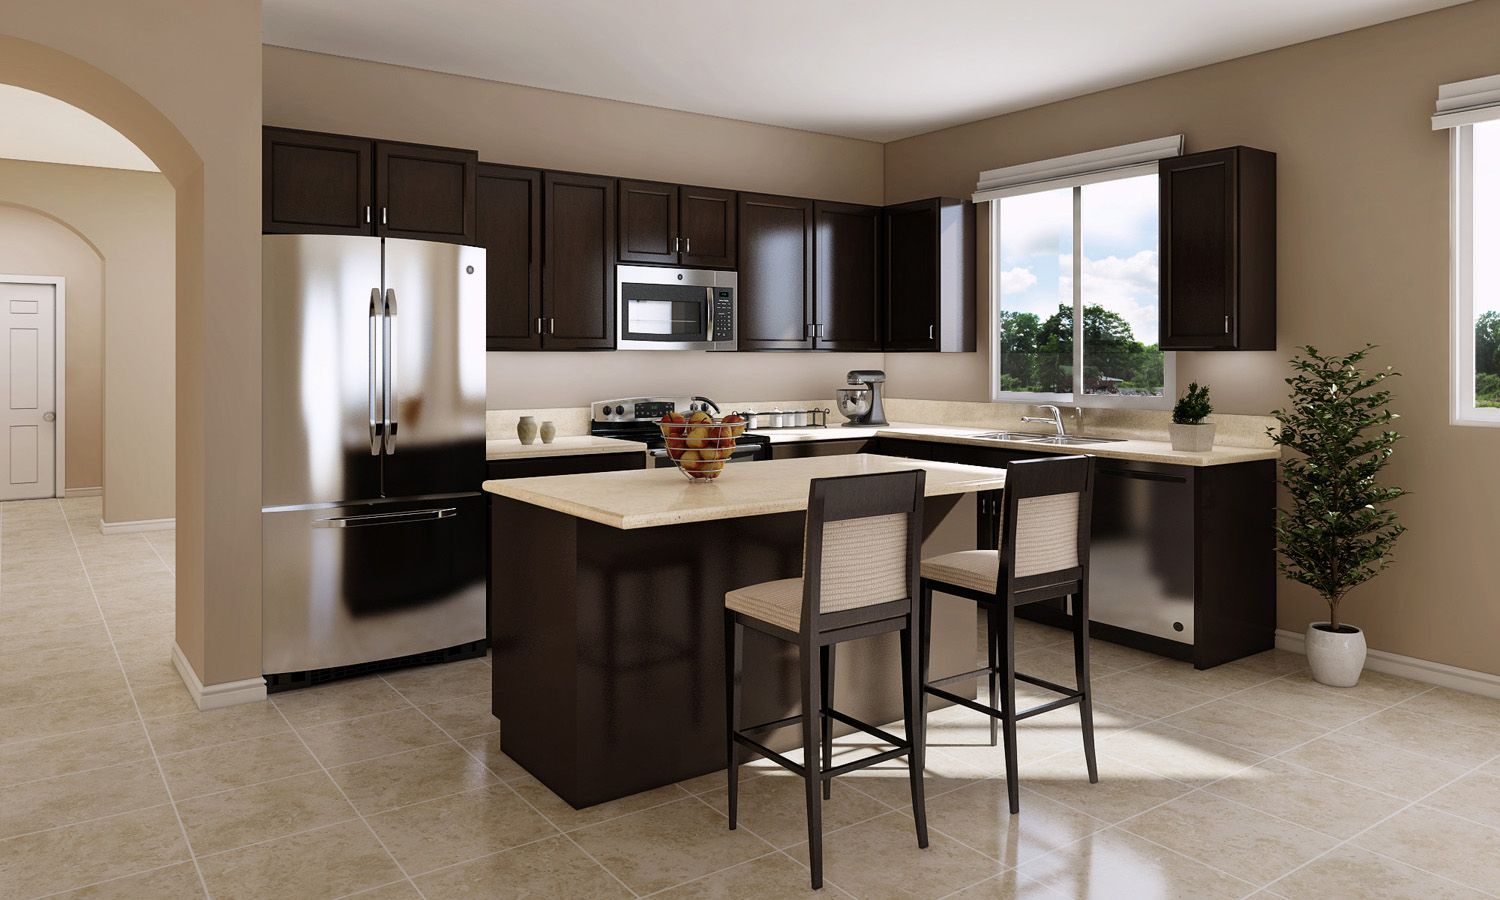 Kitchen featured in The Caledonia By Stonefield Home in Merced, CA